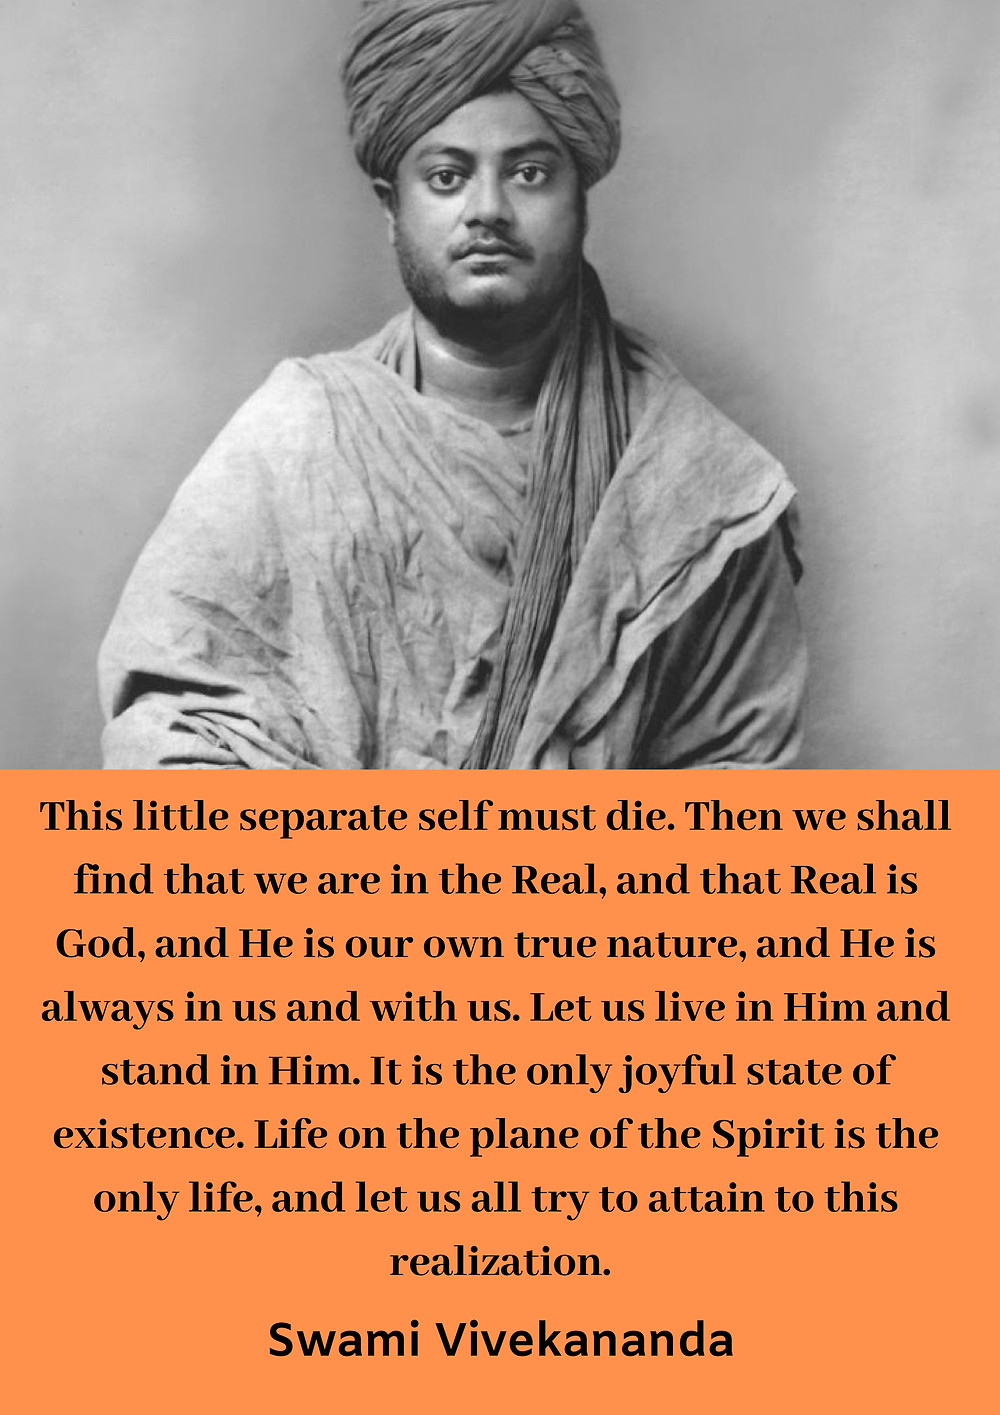 This little separate self must die. Then we shall find that we are in the Real, and that Real is God, and He is our own true nature, and He is always in us and with us. Let us live in Him and stand in Him. It is the only joyful state of existence. Life on the plane of the Spirit is the only life, and let us all try to attain to this realization.